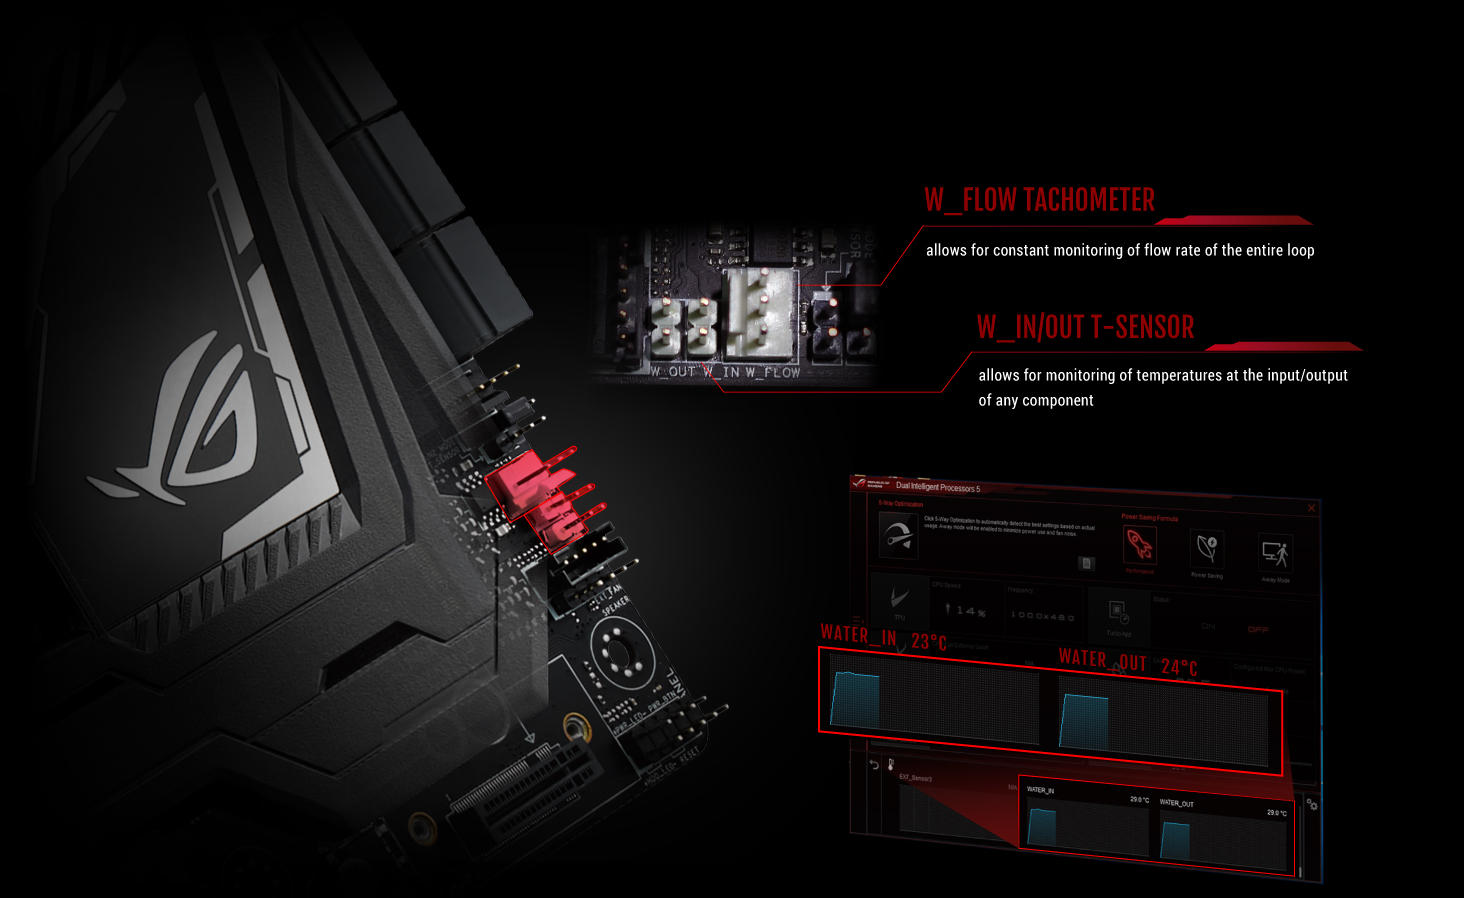 http://www.asus.com/websites/global/products/6RfMI11oThscuMX4/img/rog-water-cooling-zone.jpg